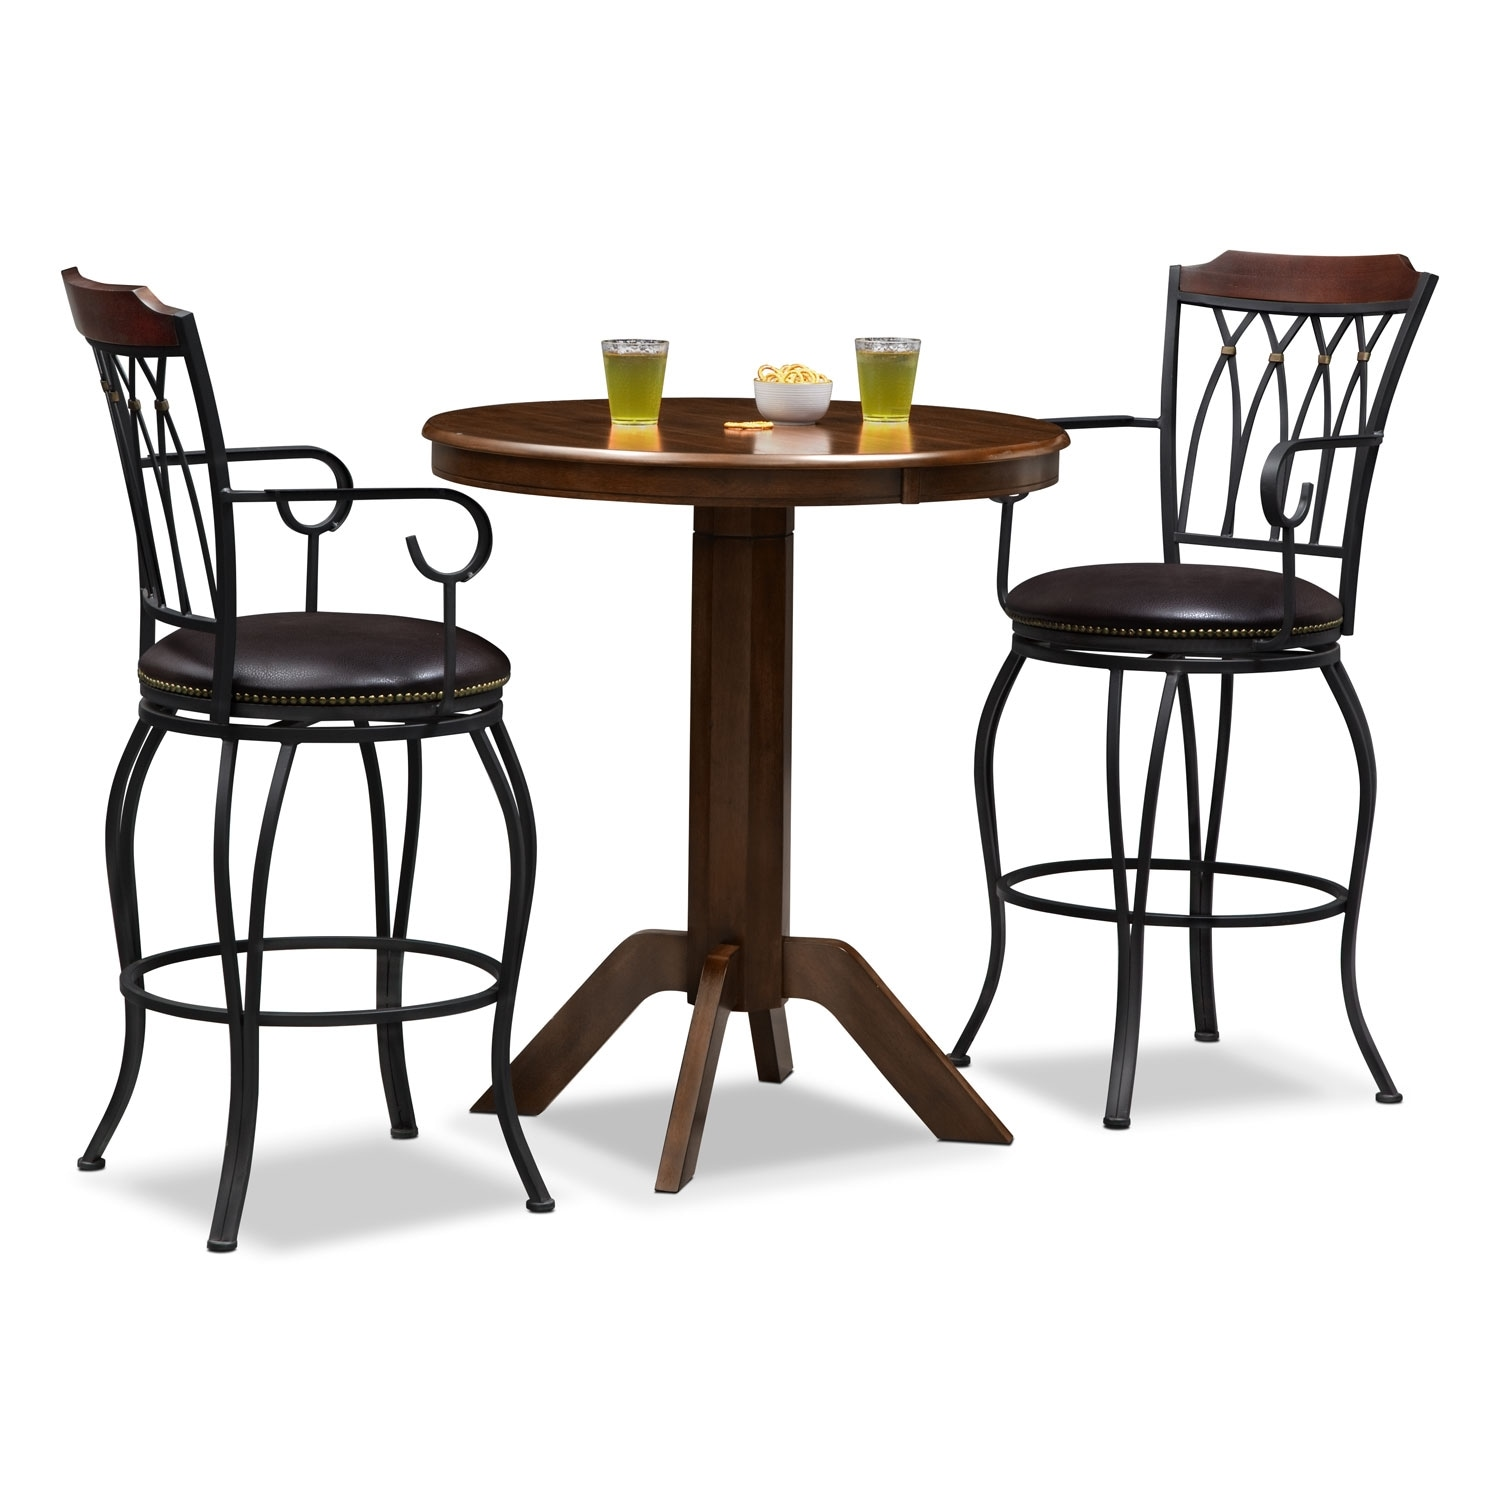 Accent and Occasional Furniture - Concord Winfield 3 Pc. Bar-Height Dinette